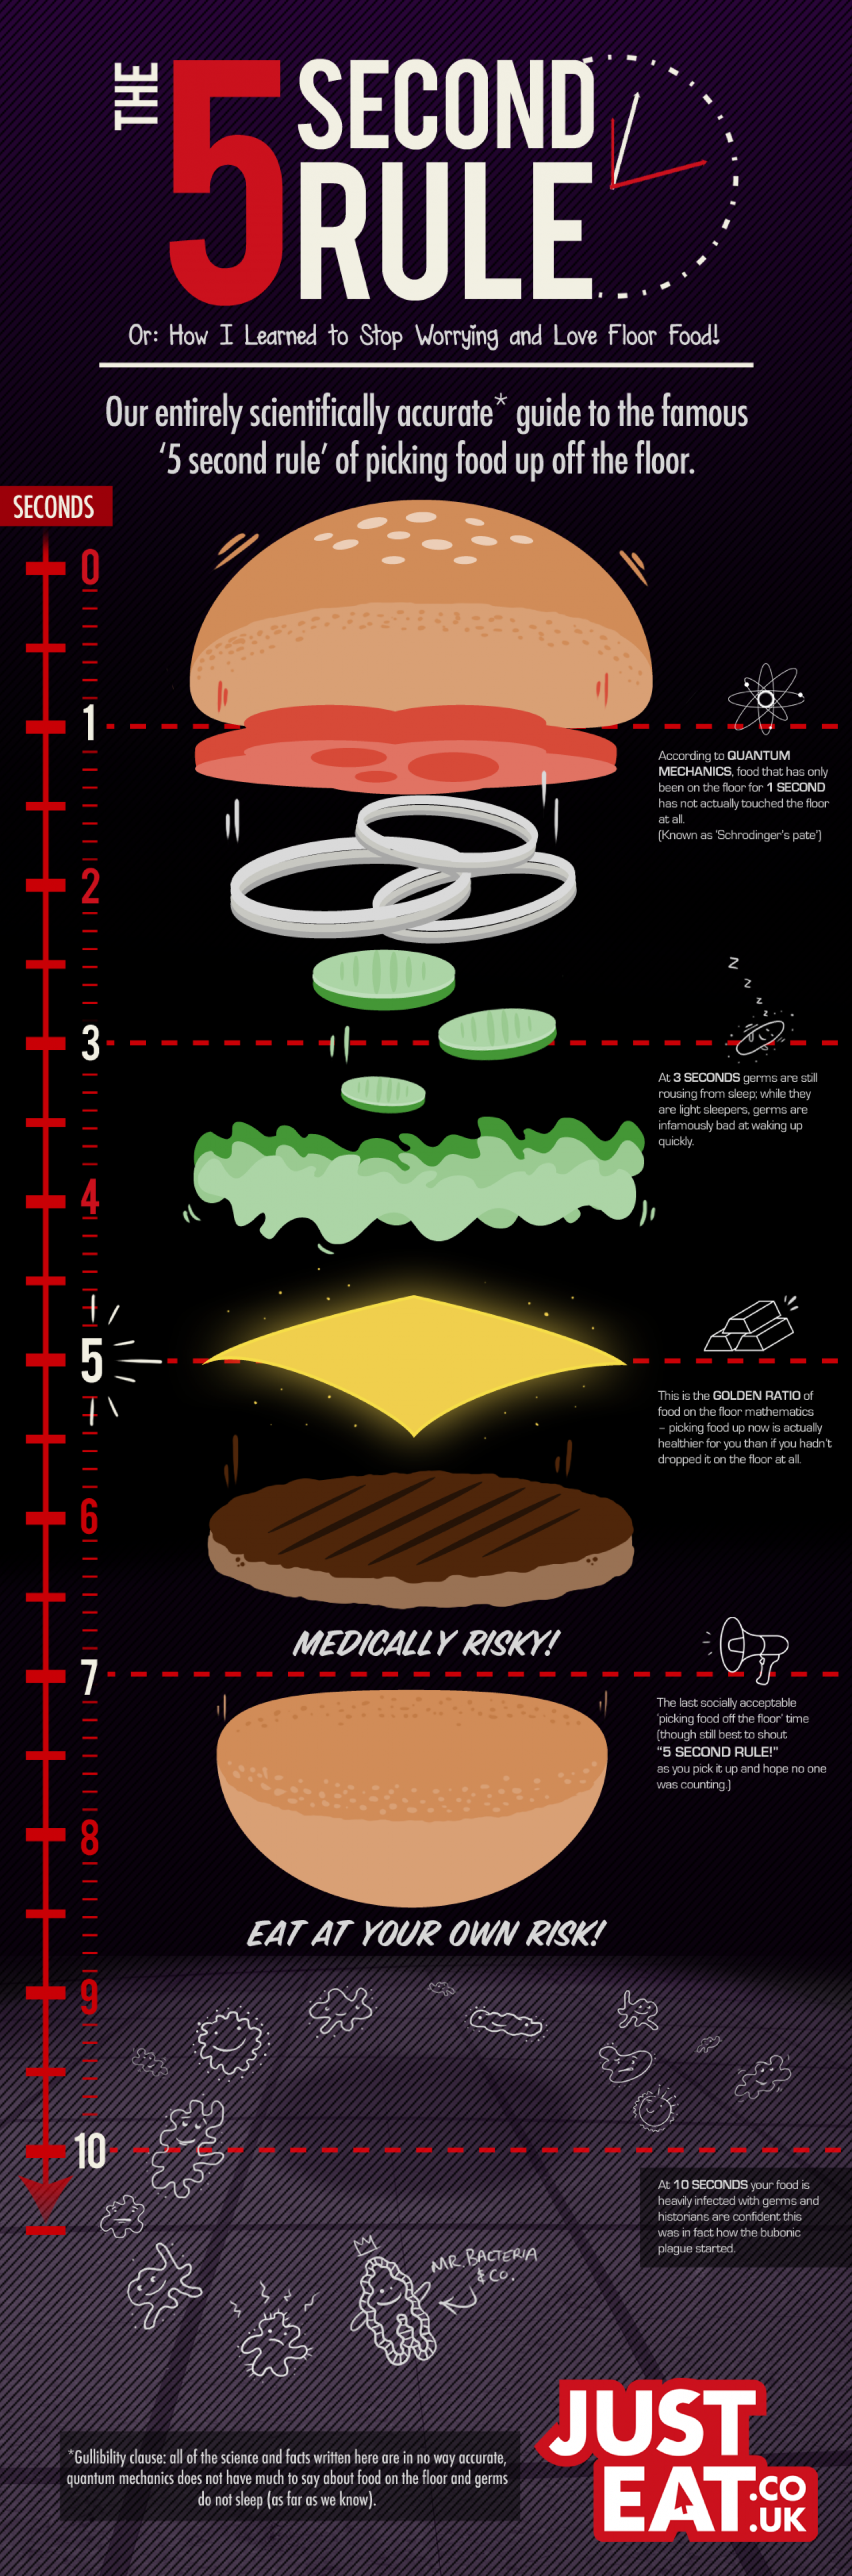 The 5 Second Rule Infographic